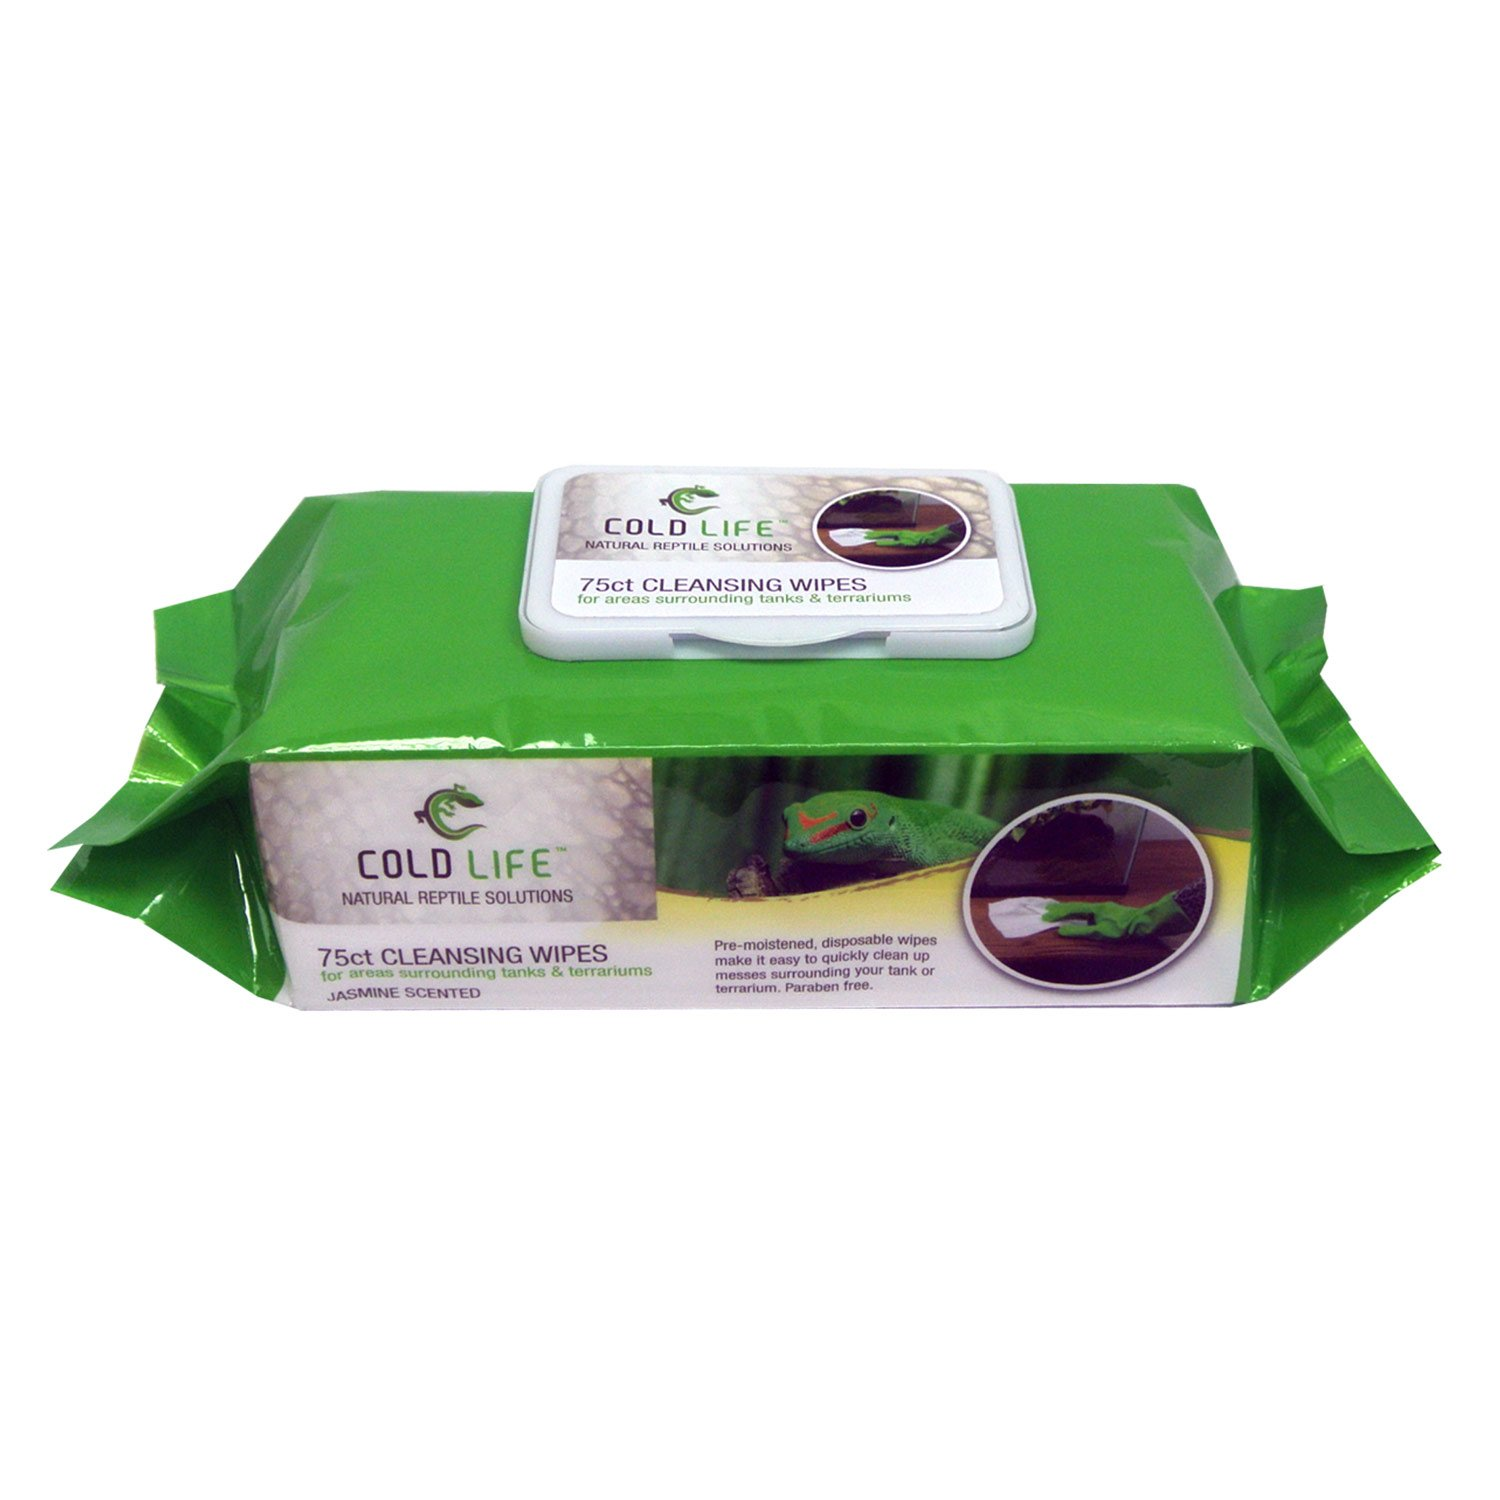 Cold Life Cleansing Wipes